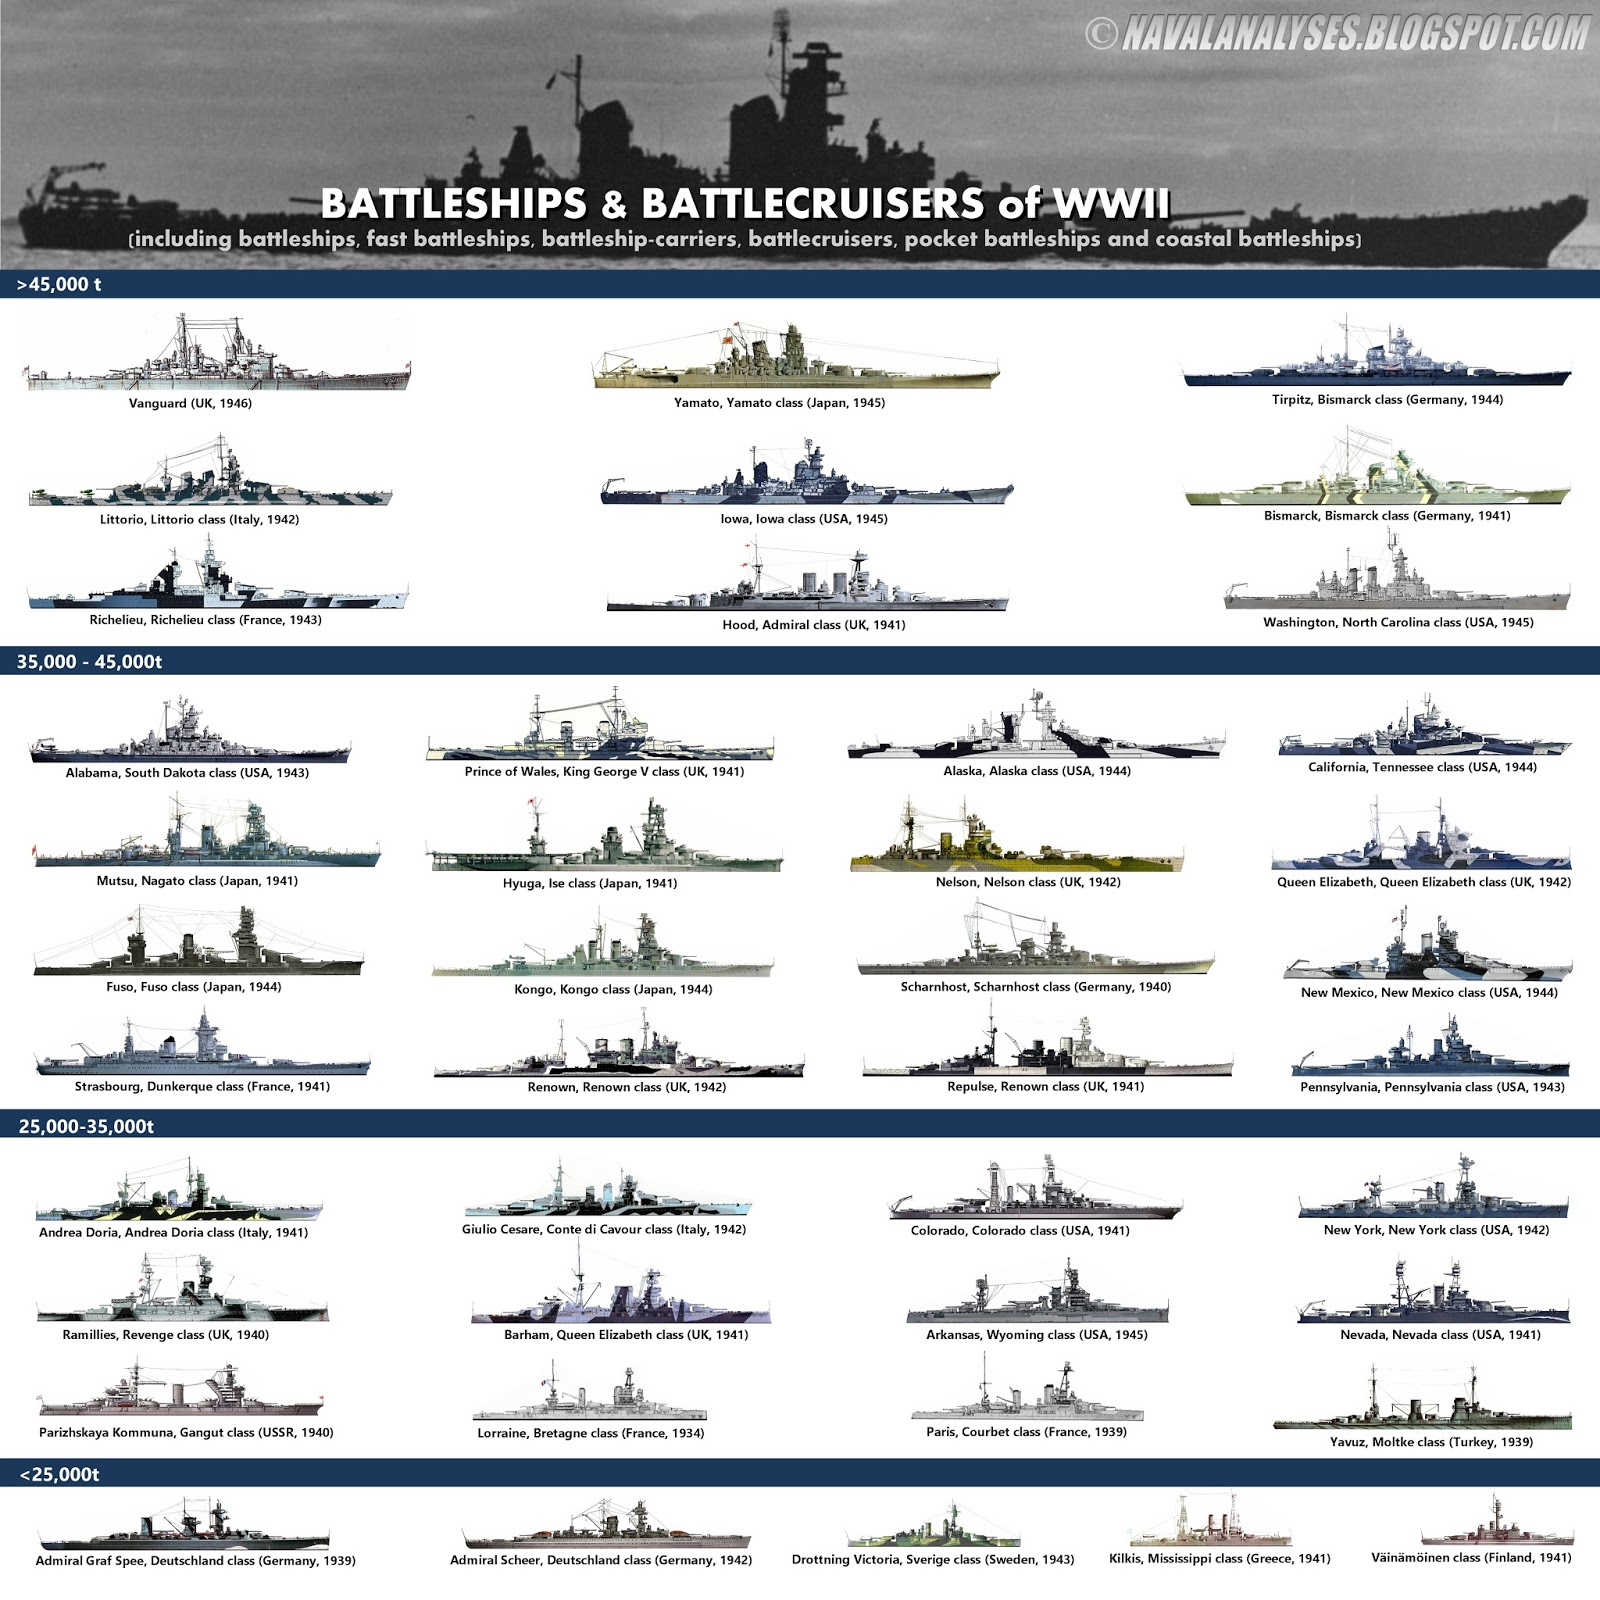 hight resolution of battleships and battlecruisers of wwii version iii for a high resolution image click here another version where the coastal battleships yavuz kilkis